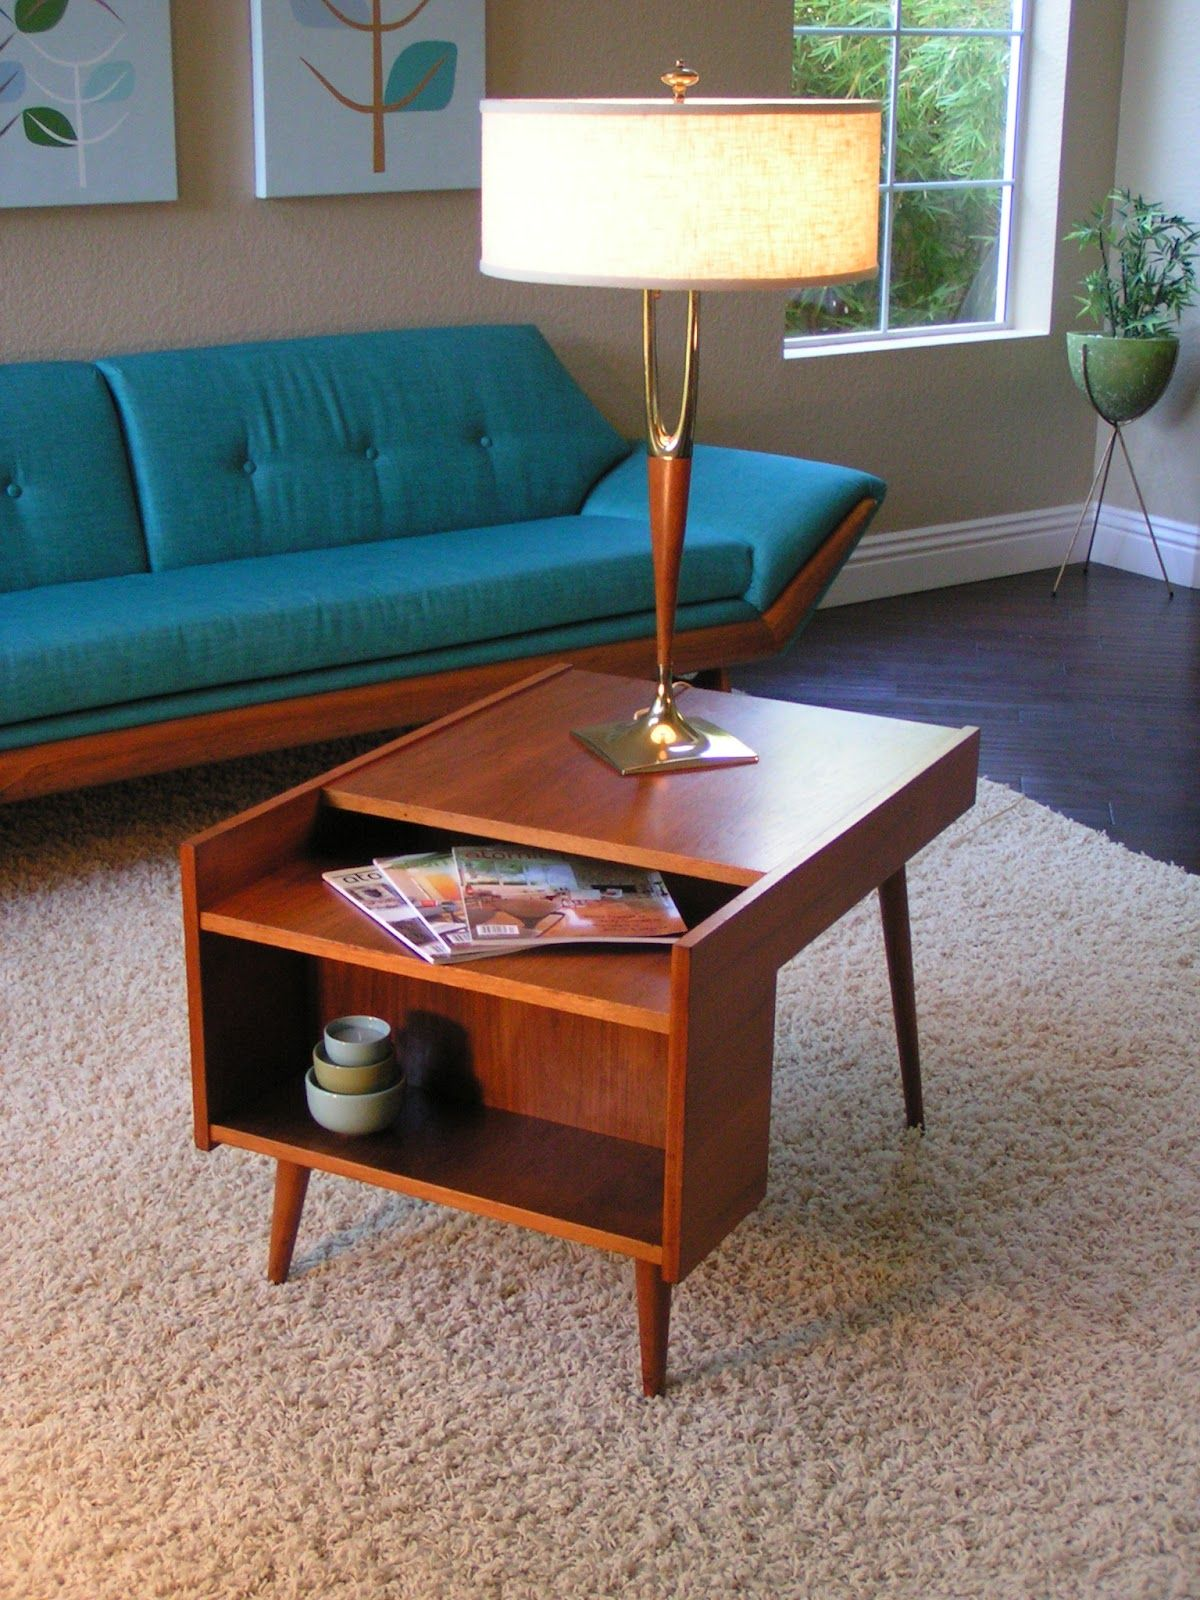 1950s Side Table Design Milo Baughman Manufactured By Glenn Of Rh Pinterest  Com 1960s Furniture Styles 1950s Furniture Style Bedroom